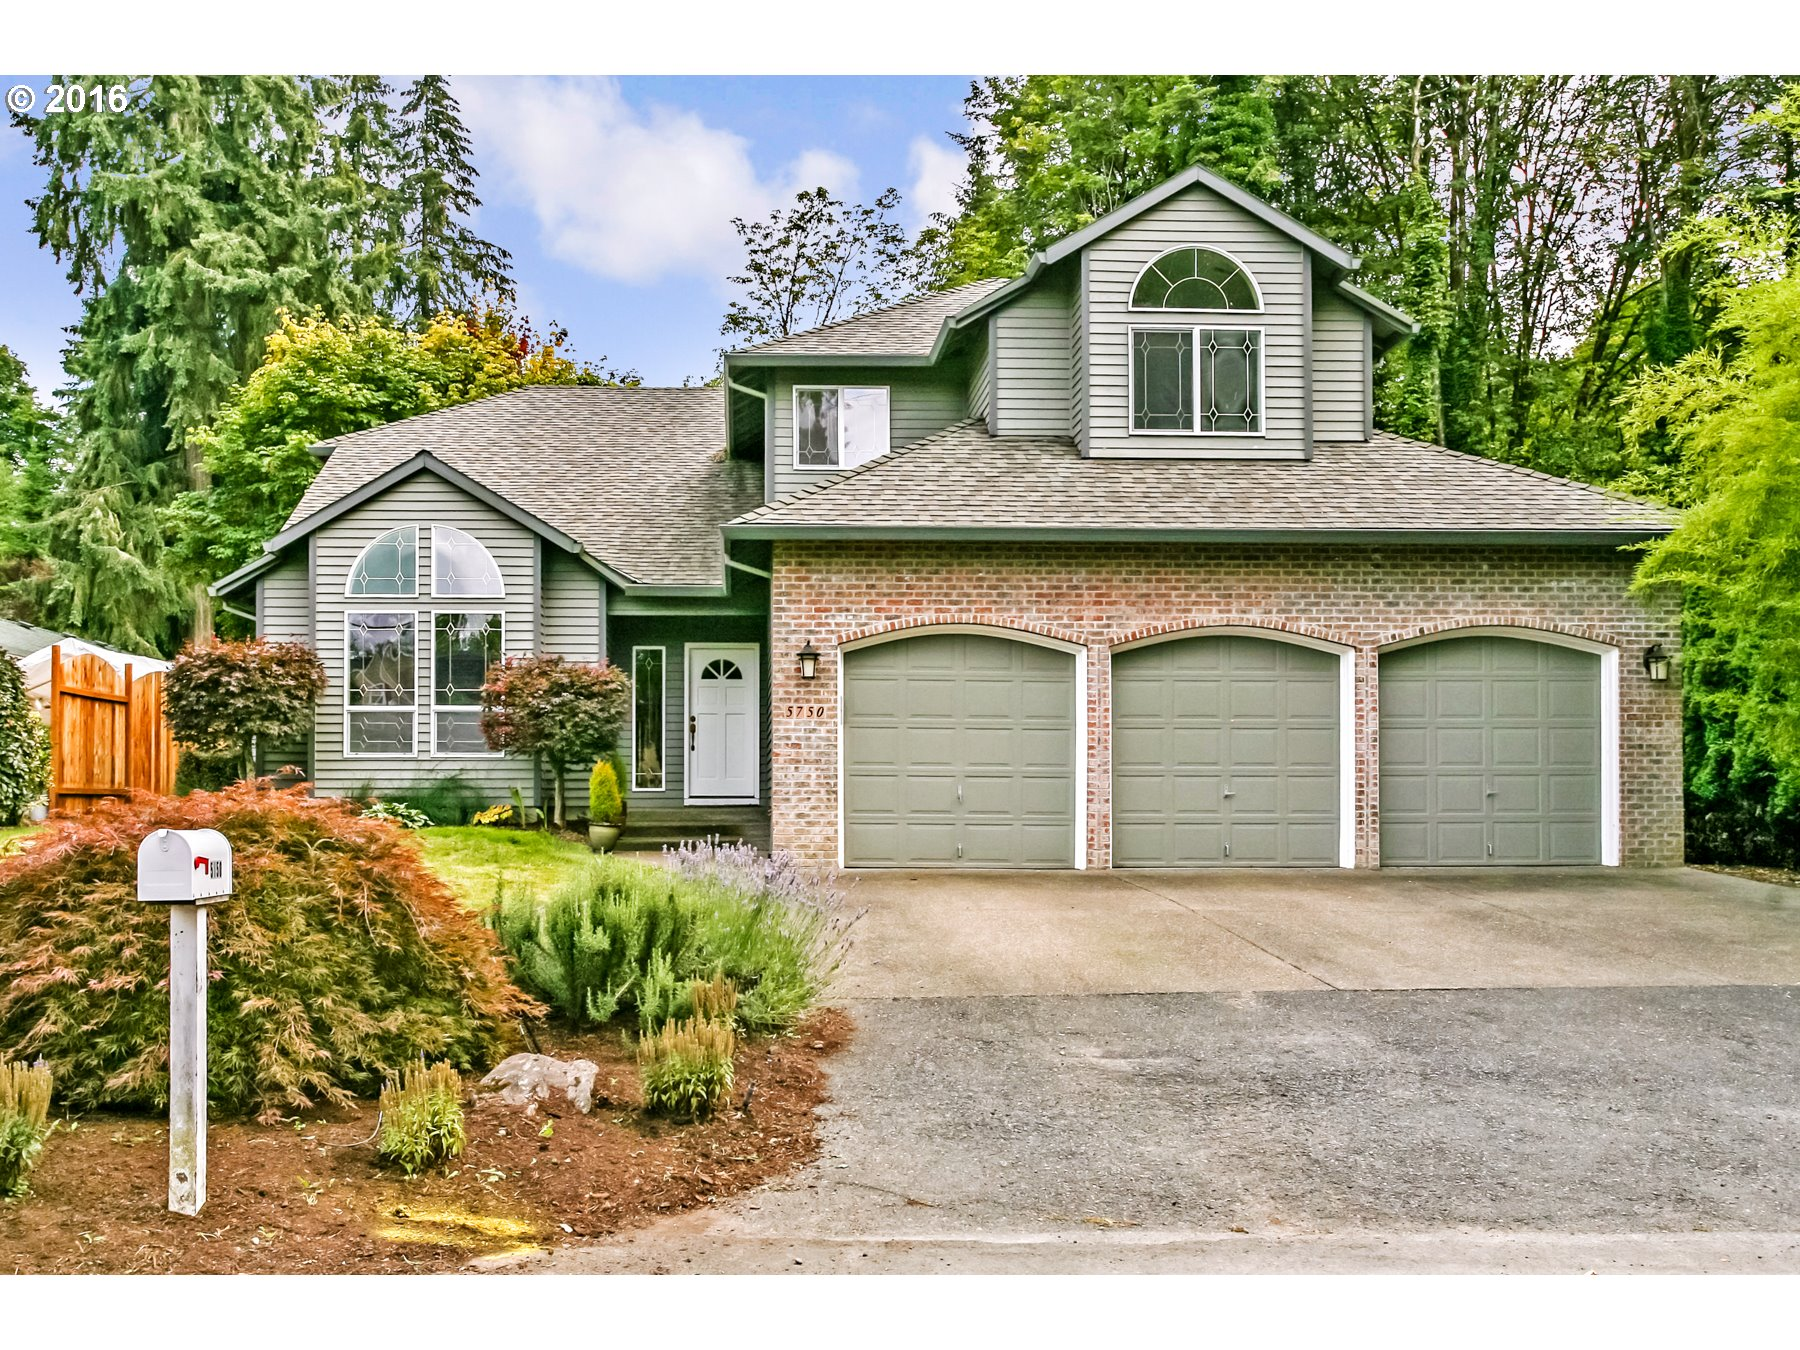 $550,000 - 4Br/3Ba -  for Sale in Maddax Woods, West Linn